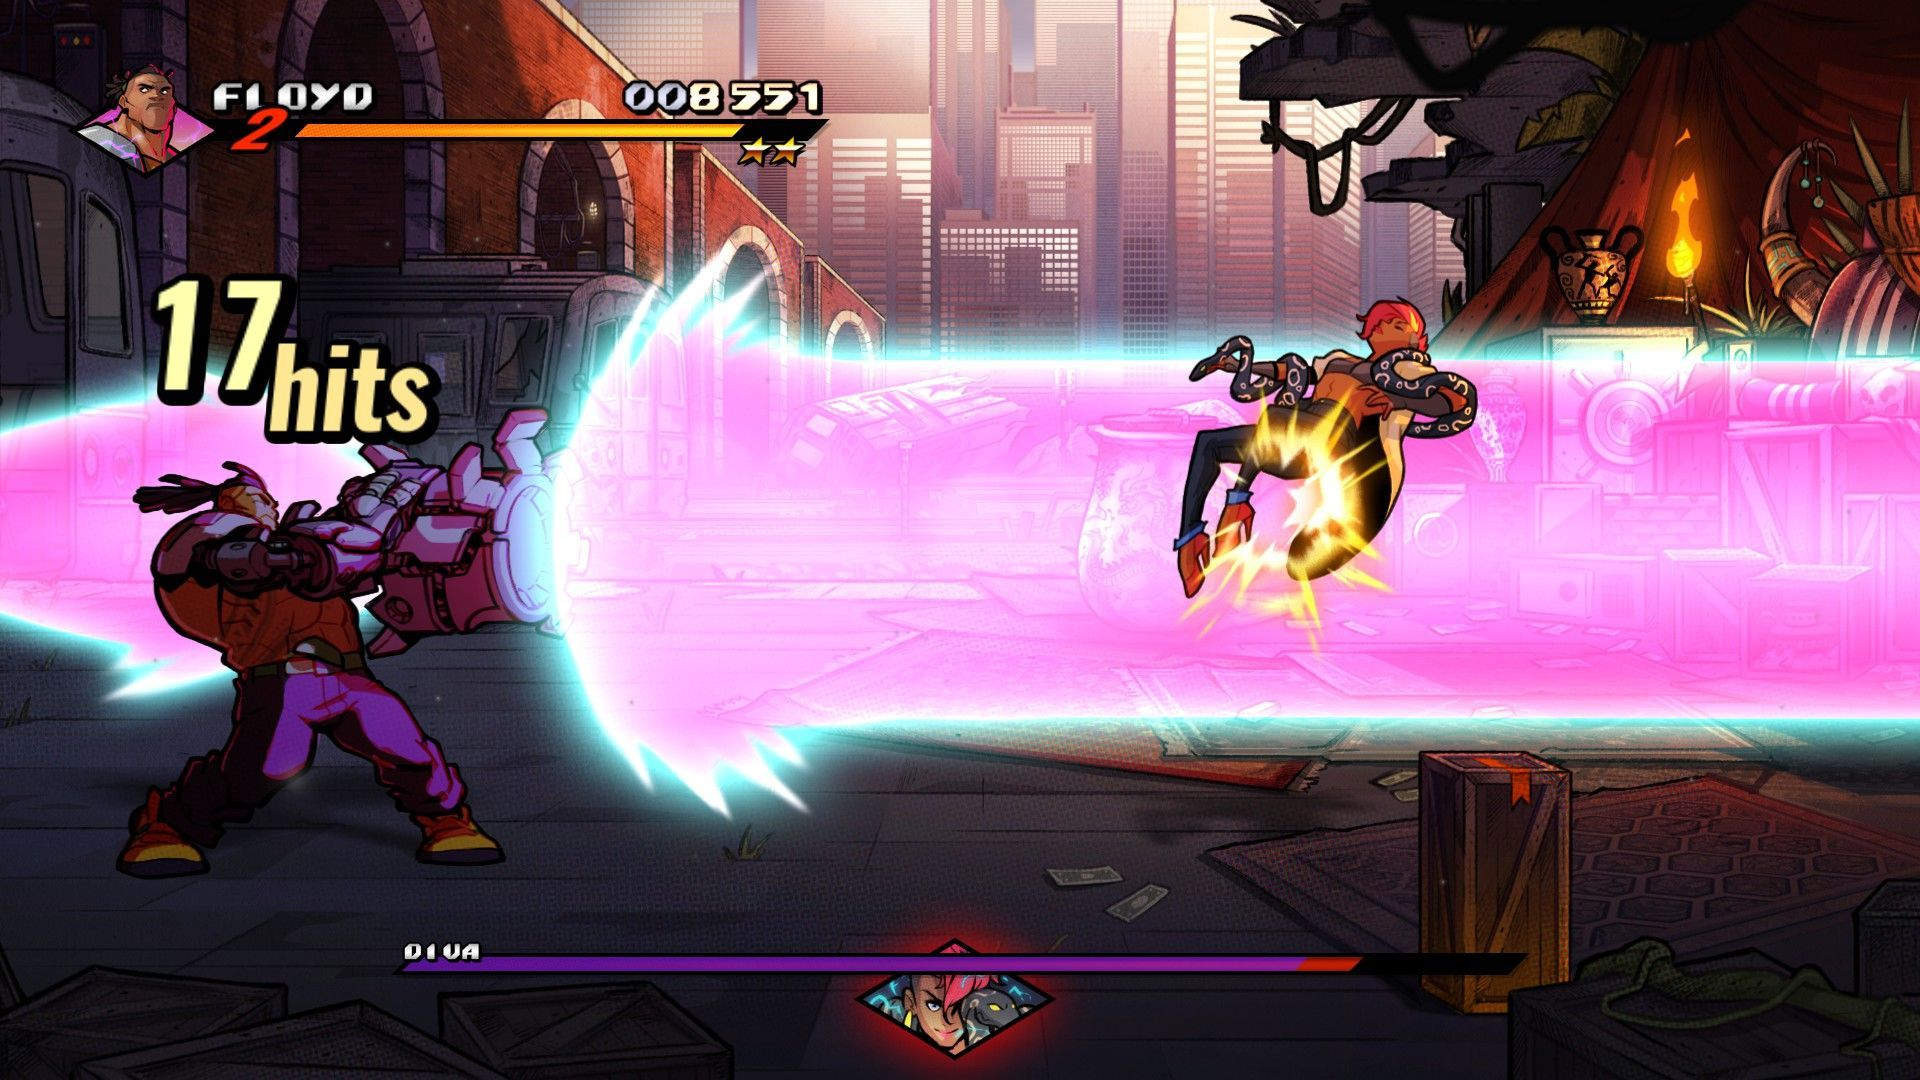 A screenshot from Streets Of Rage 4 showing the player character Floyd using a special attack, a huge beam of purple light blasting away an enemy